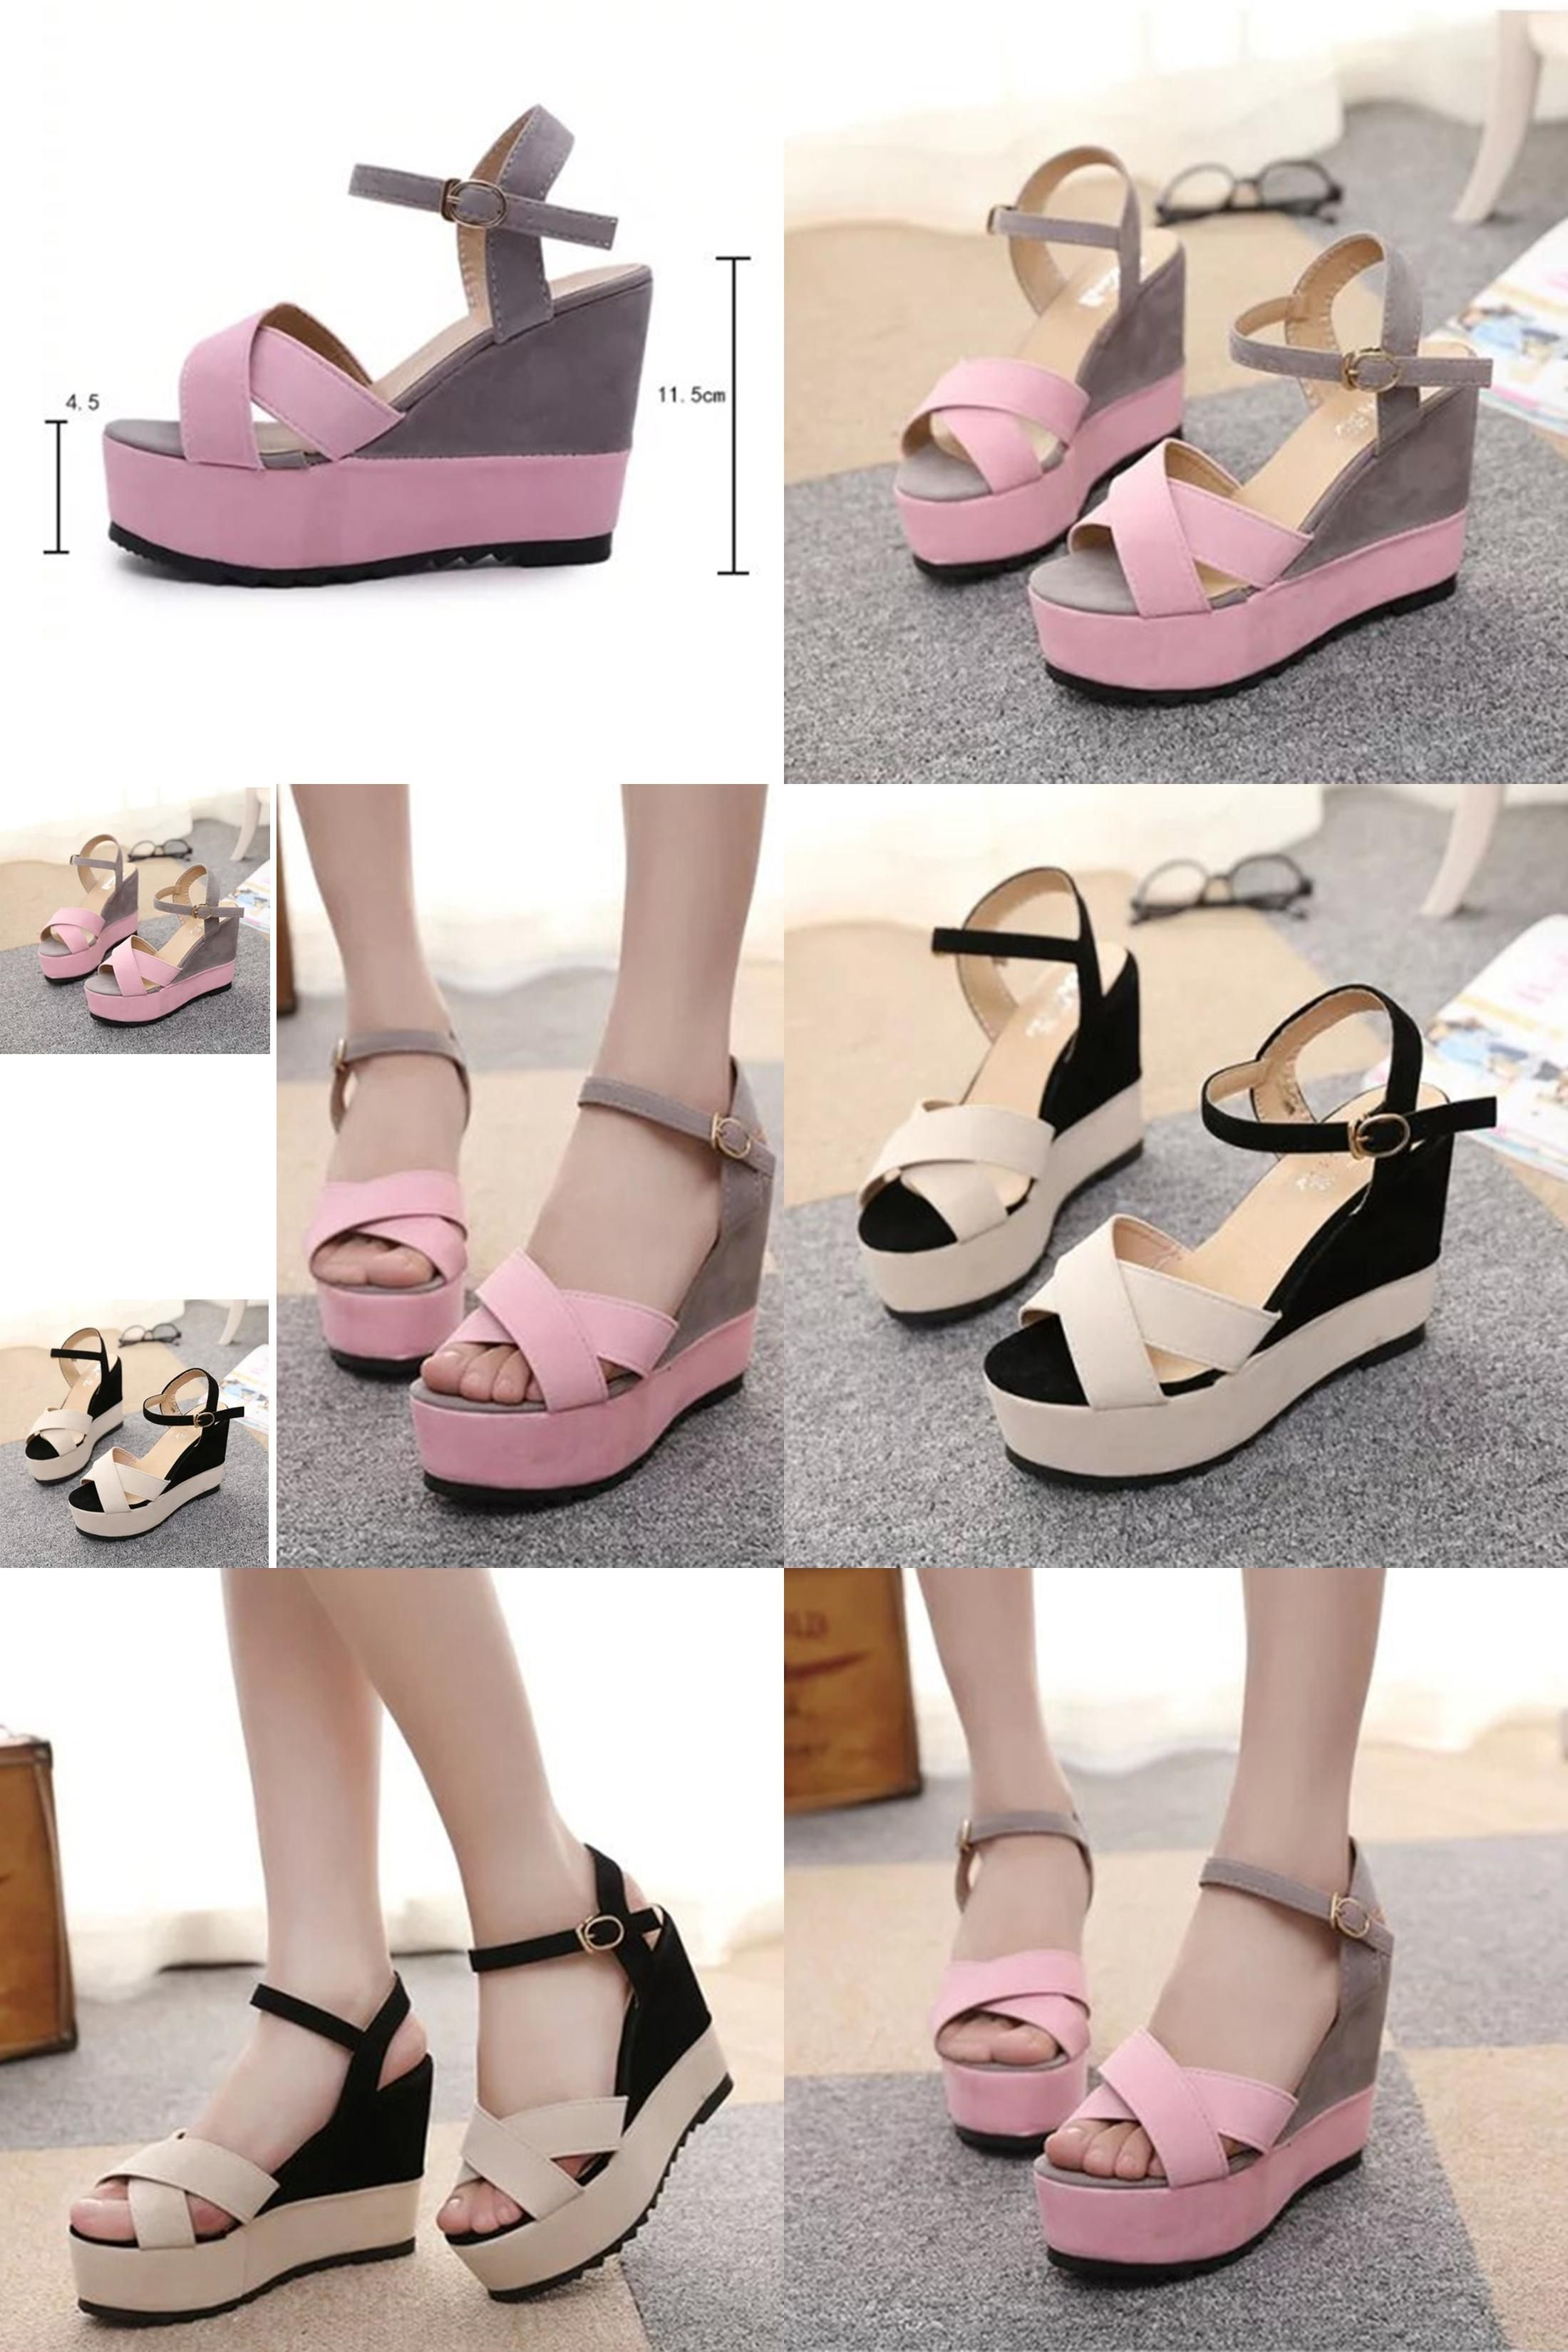 c8258bf3b8 [Visit to Buy] Sexy Open toe Patch Color Wedges Gladiator Sandals Women  High Heels Platform Sandals Summer Women's platform wedge Shoes Woman  #Advertisement